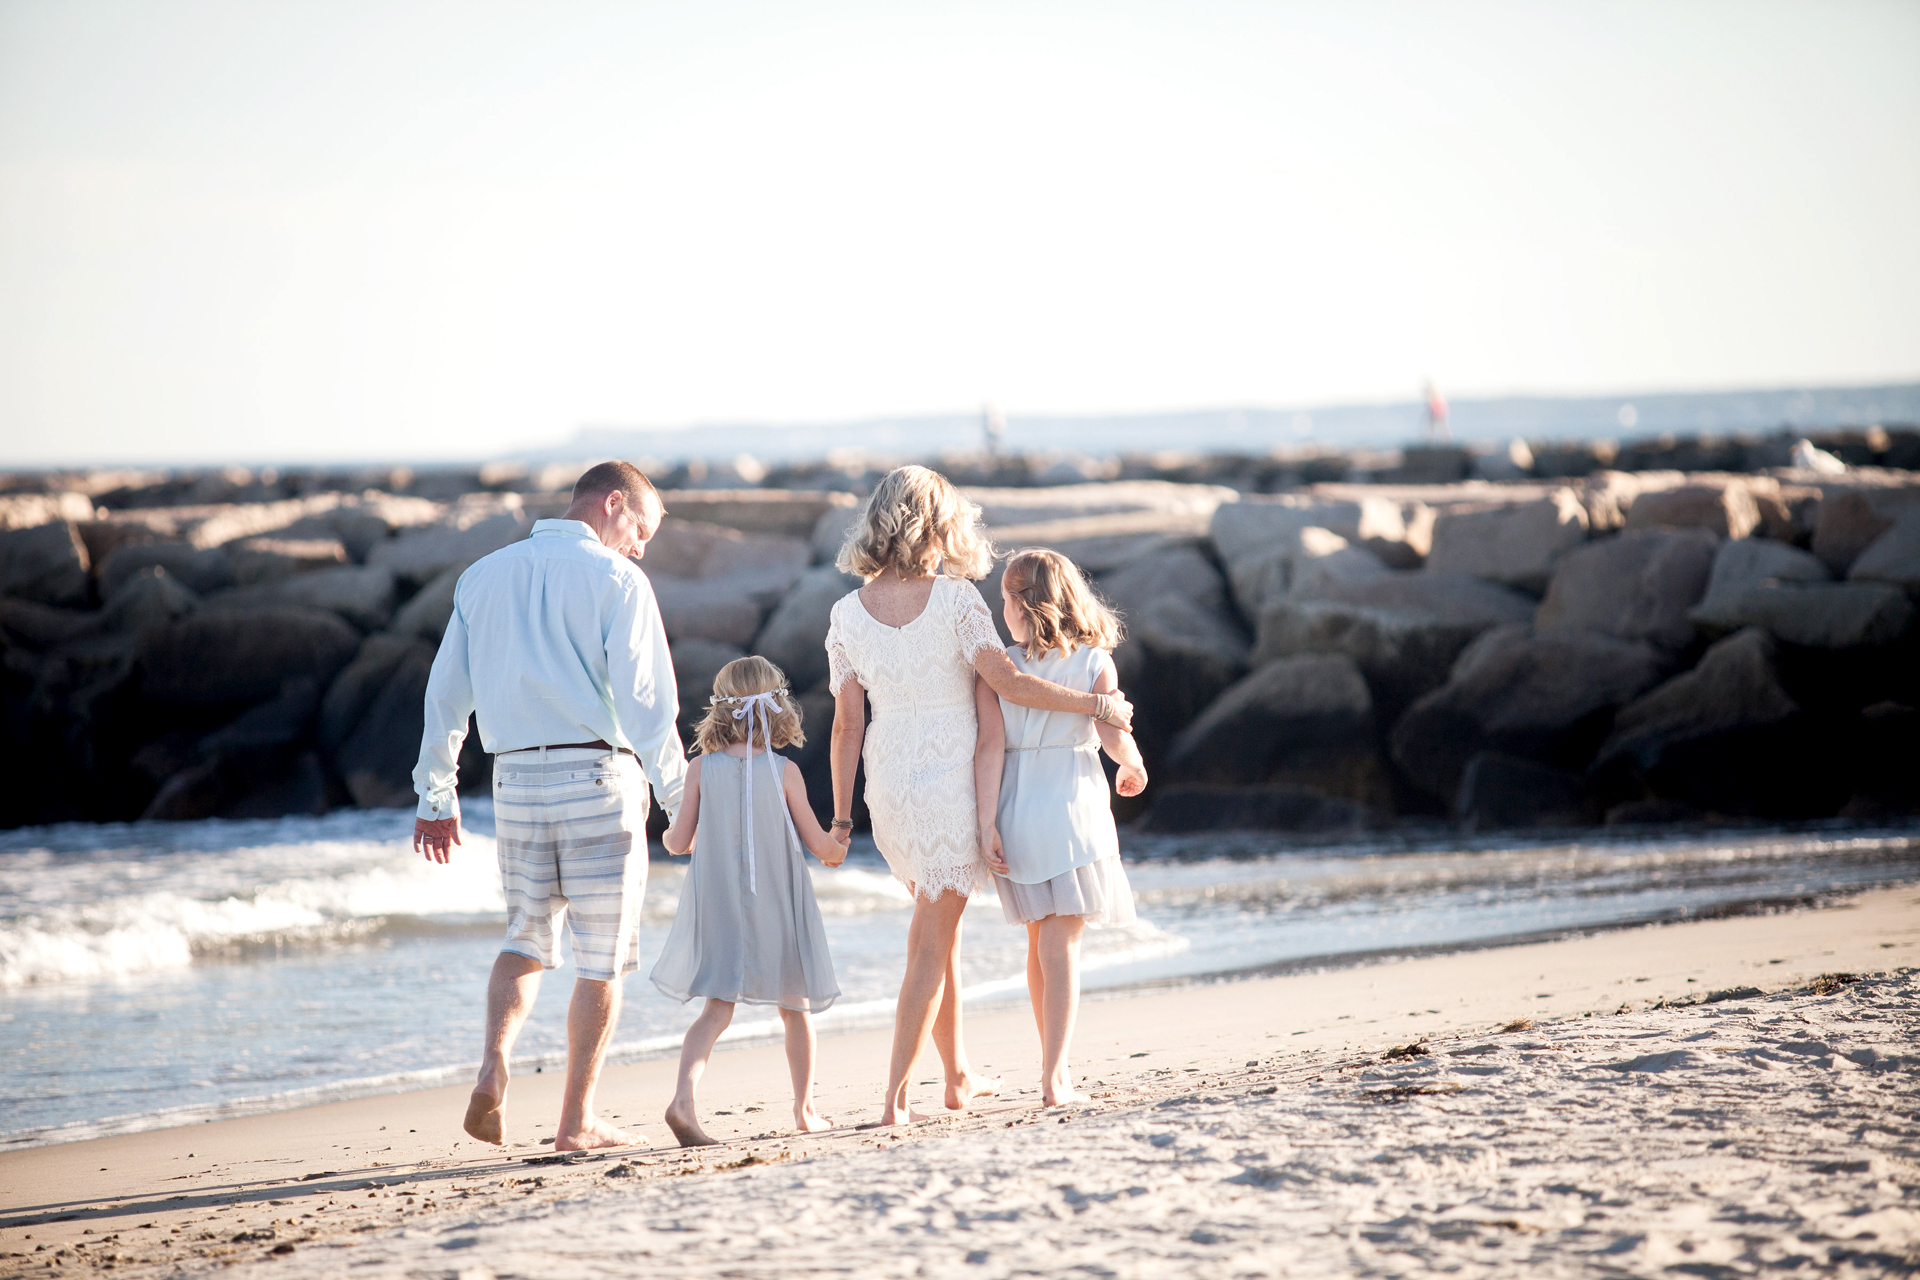 This is one of my favorite photographs of my family and I walking on the beach. It is natural, fun & timeless and will forever remind me of this special day in my family's life. Photography can be very powerful for this reason.